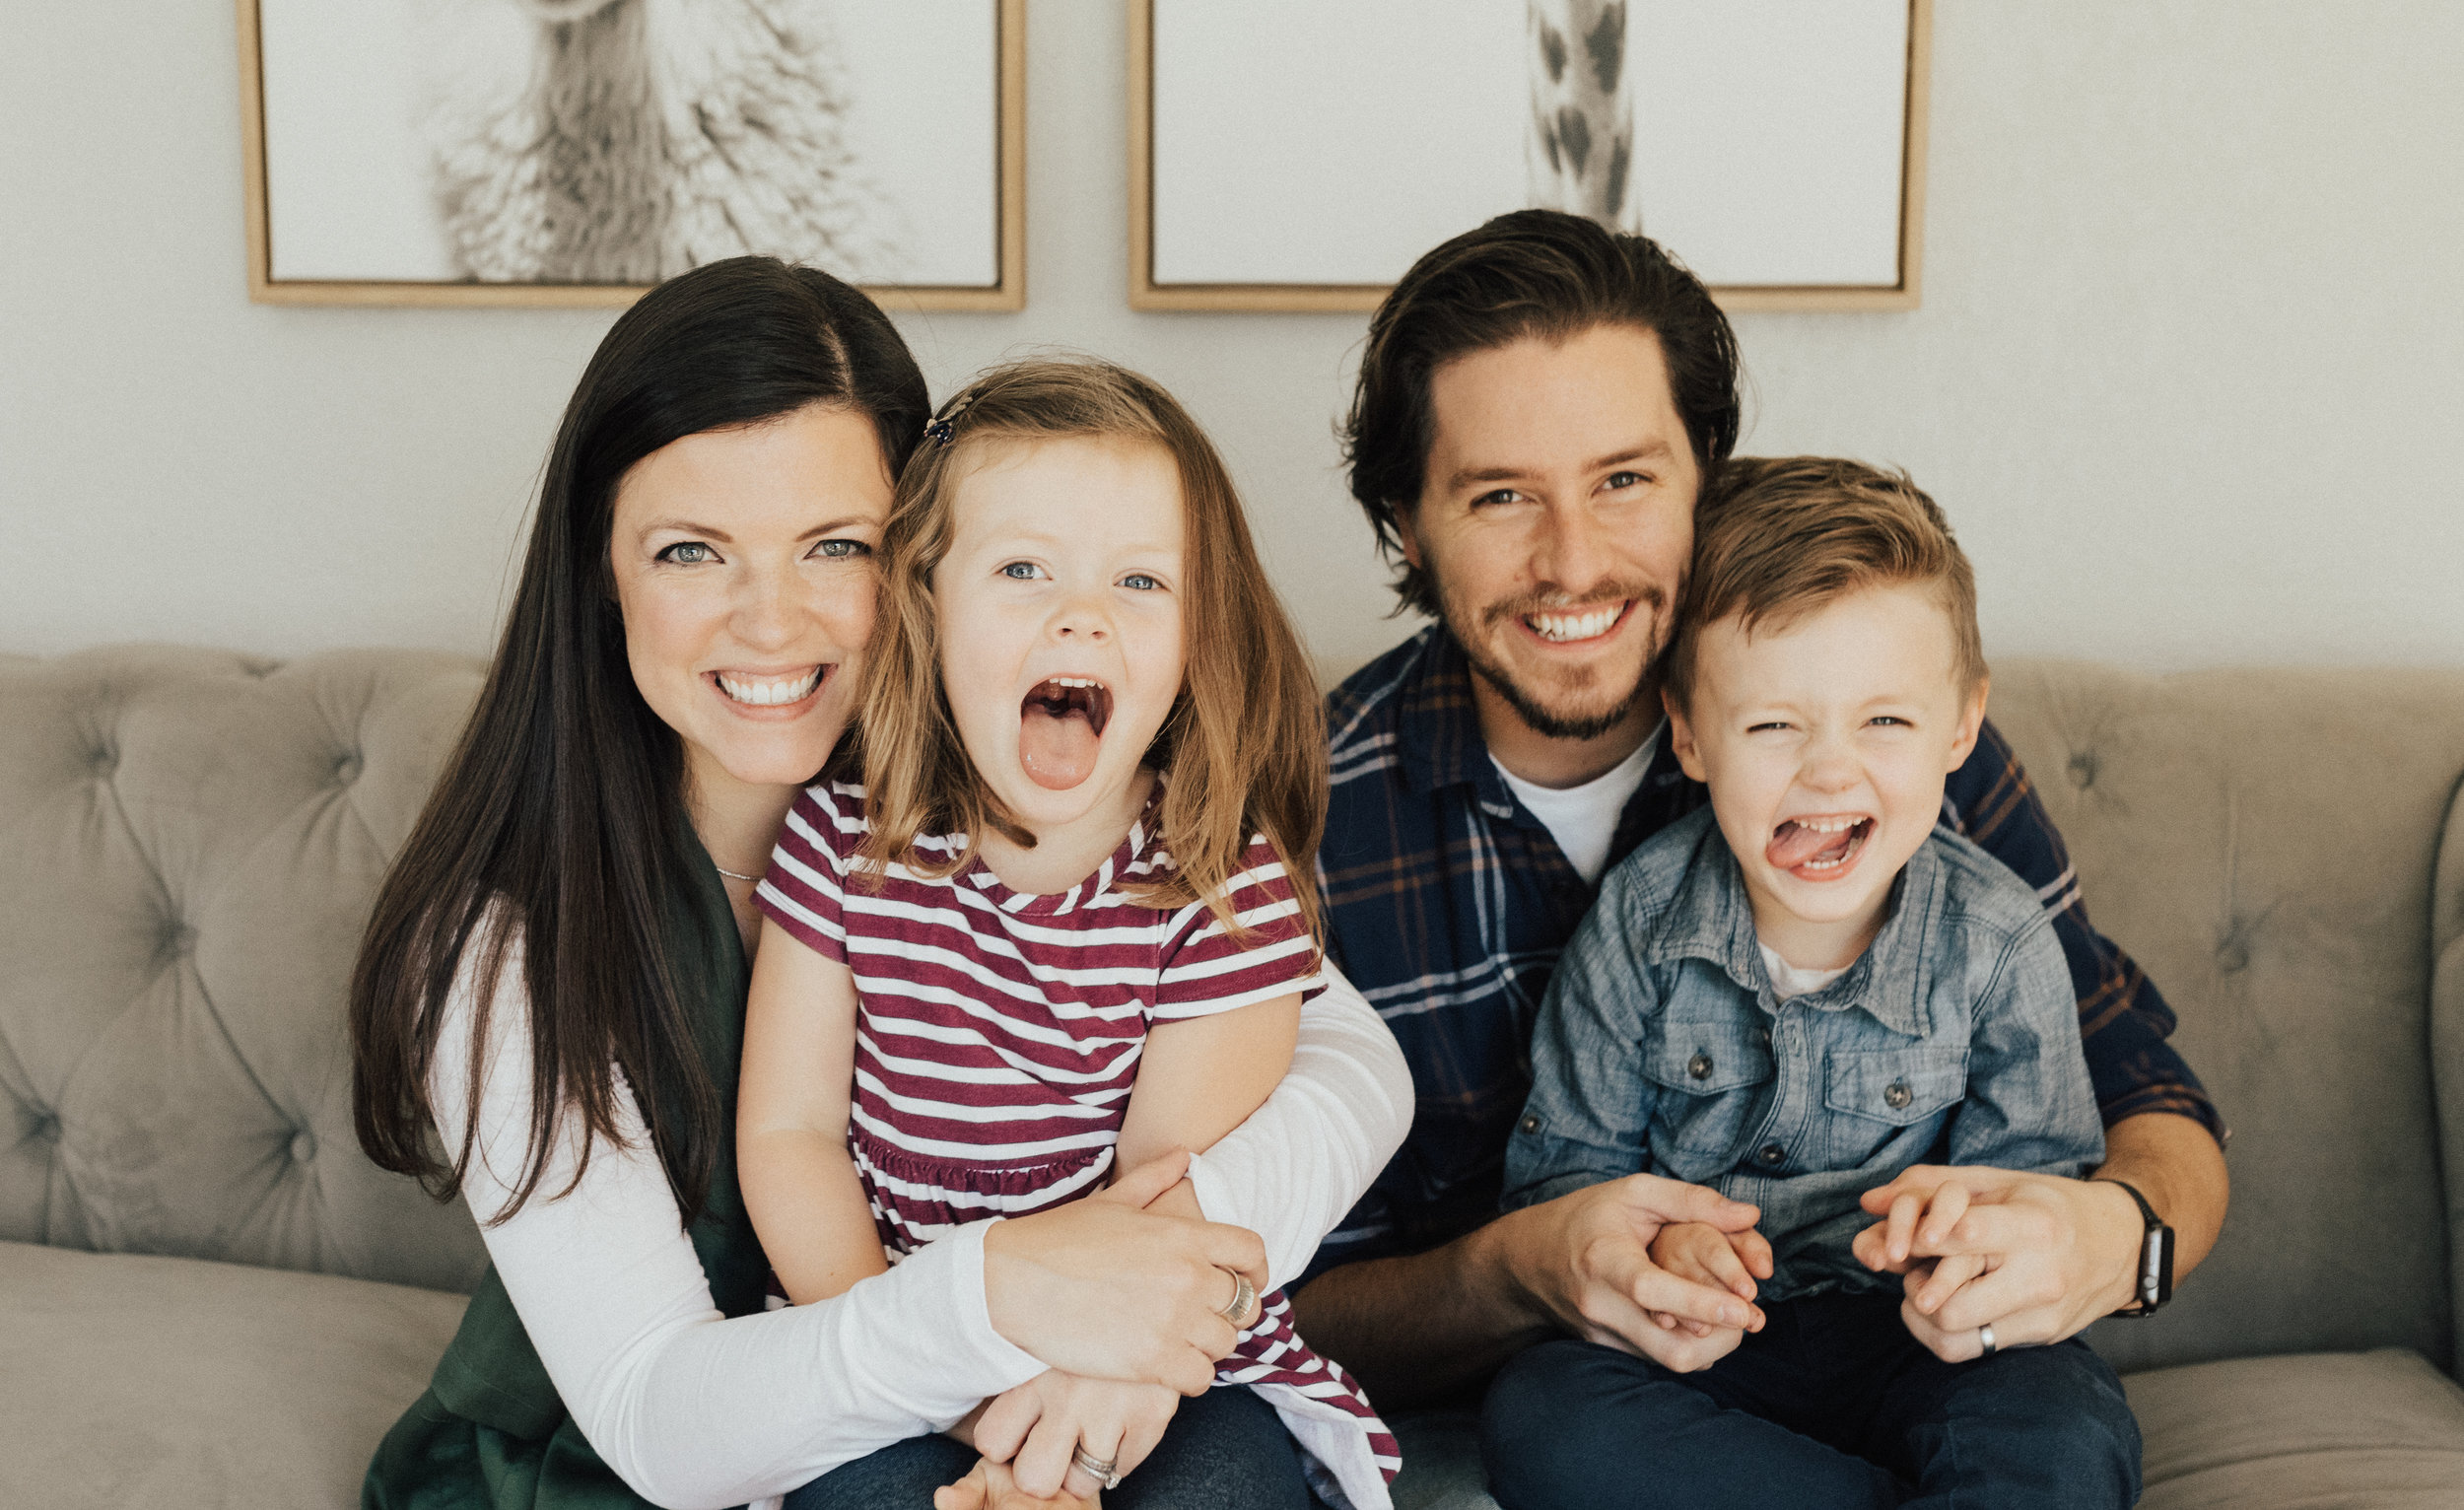 Sarah Jean Knox is a mom, wife and multi-passionate mompreneur who creates resources for stay-at-home moms who want to build a business while raising their kids full-time.